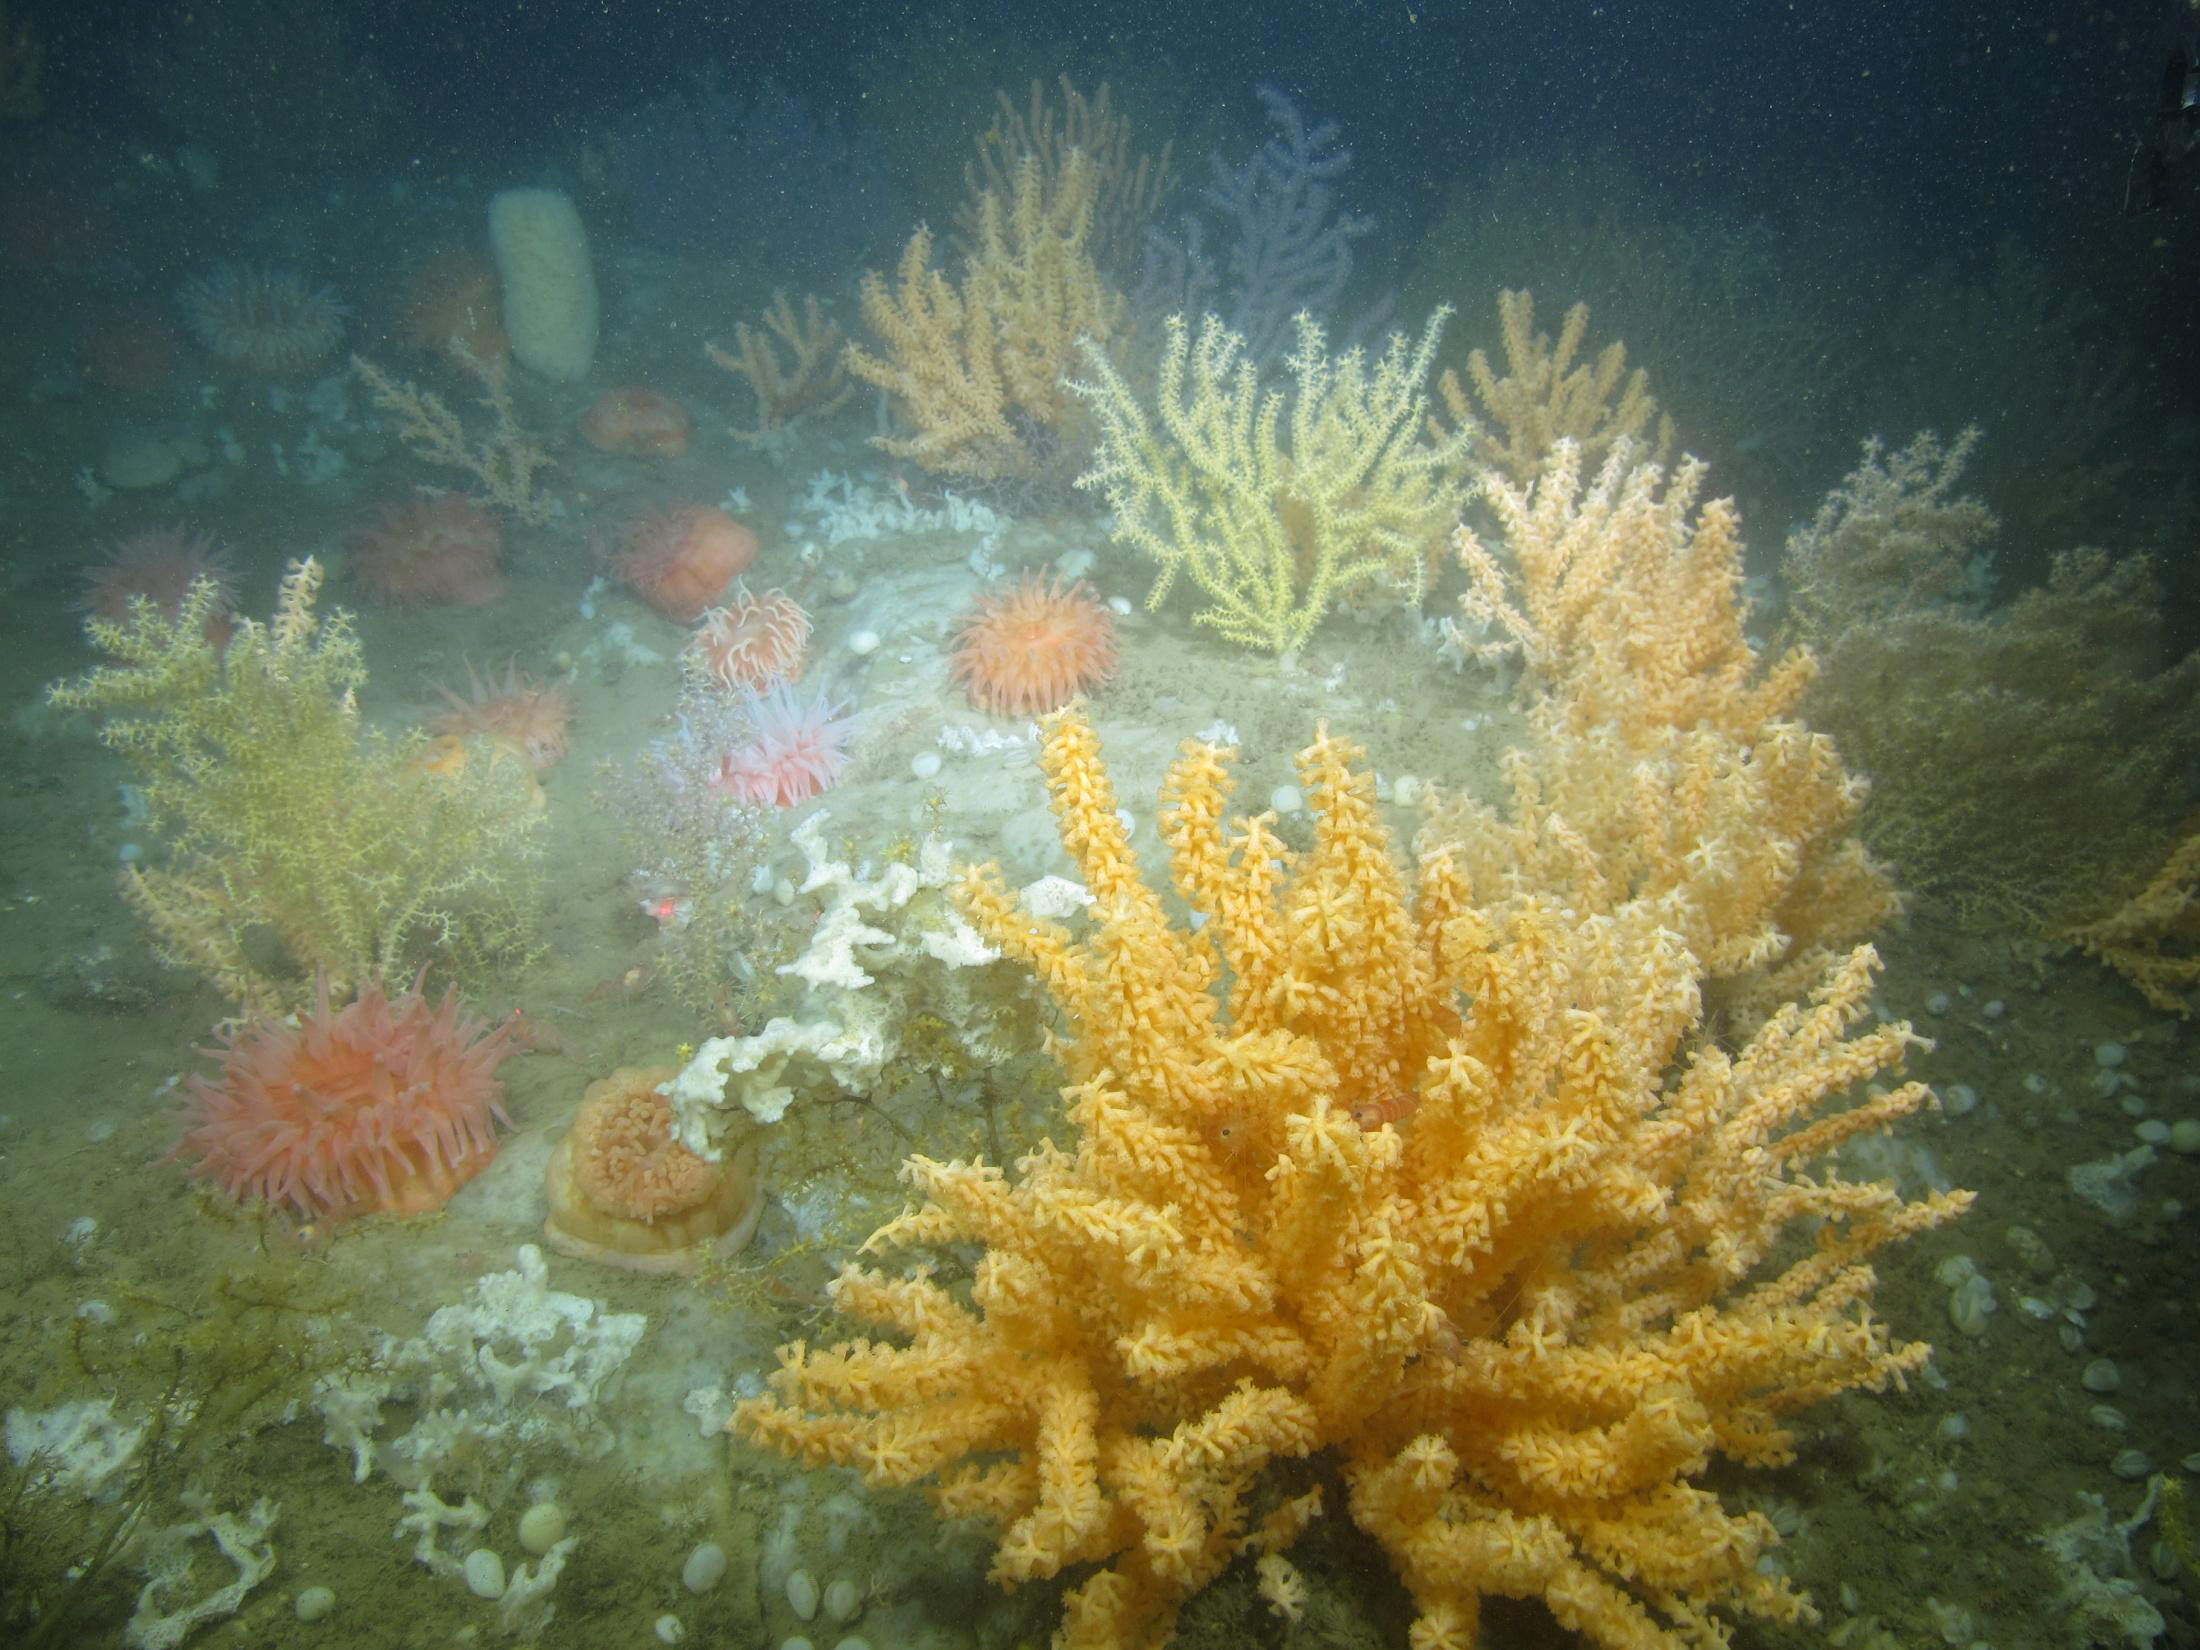 Coral garden habitat in Western Jordan Basin. Sea fans, sponges, and anemones cover the rocky ridge. (Photo courtesy of Peter Auster)